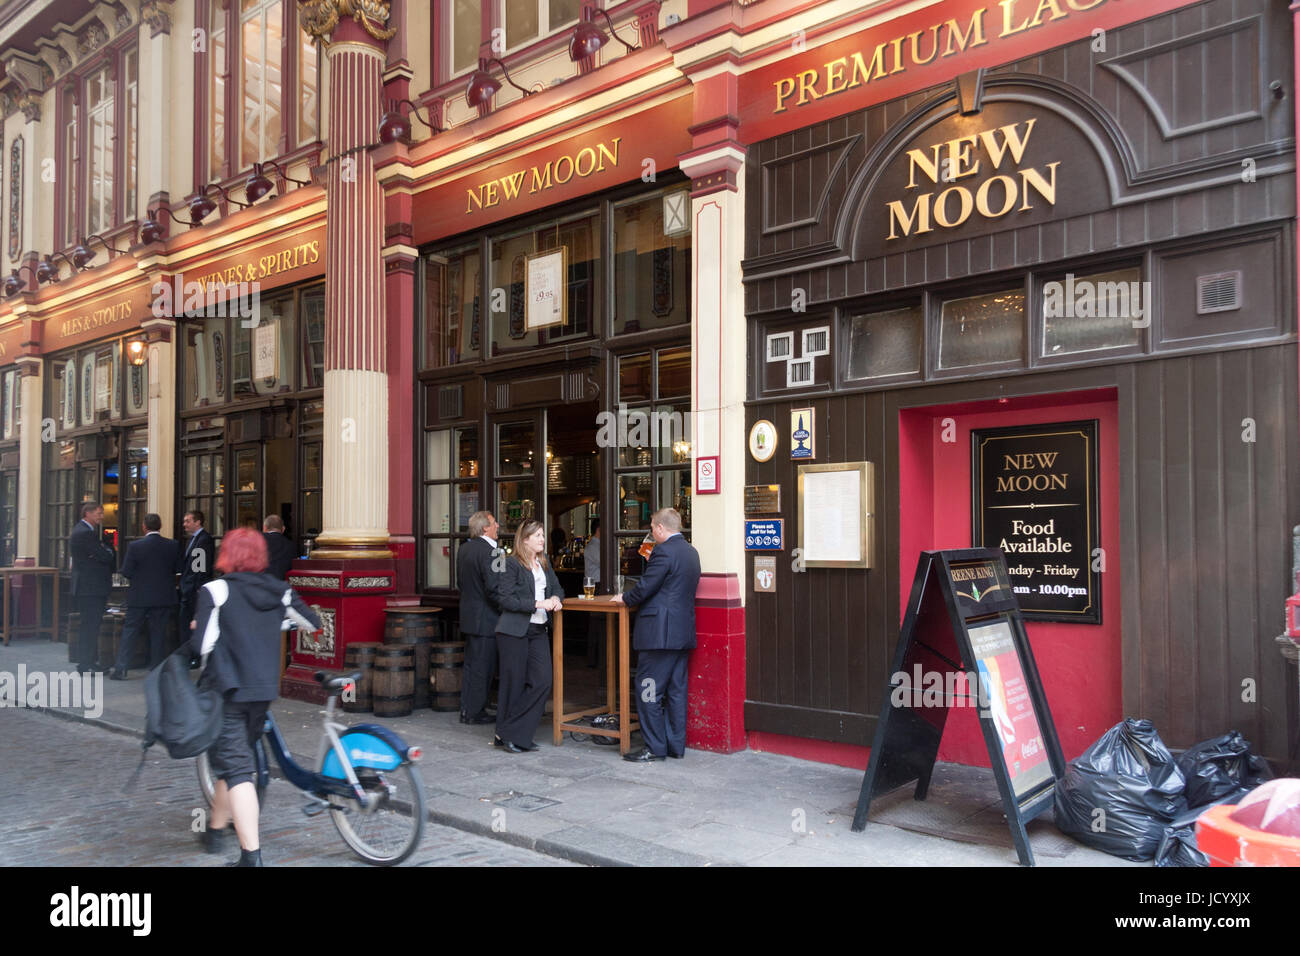 New moon pub leadenhall market